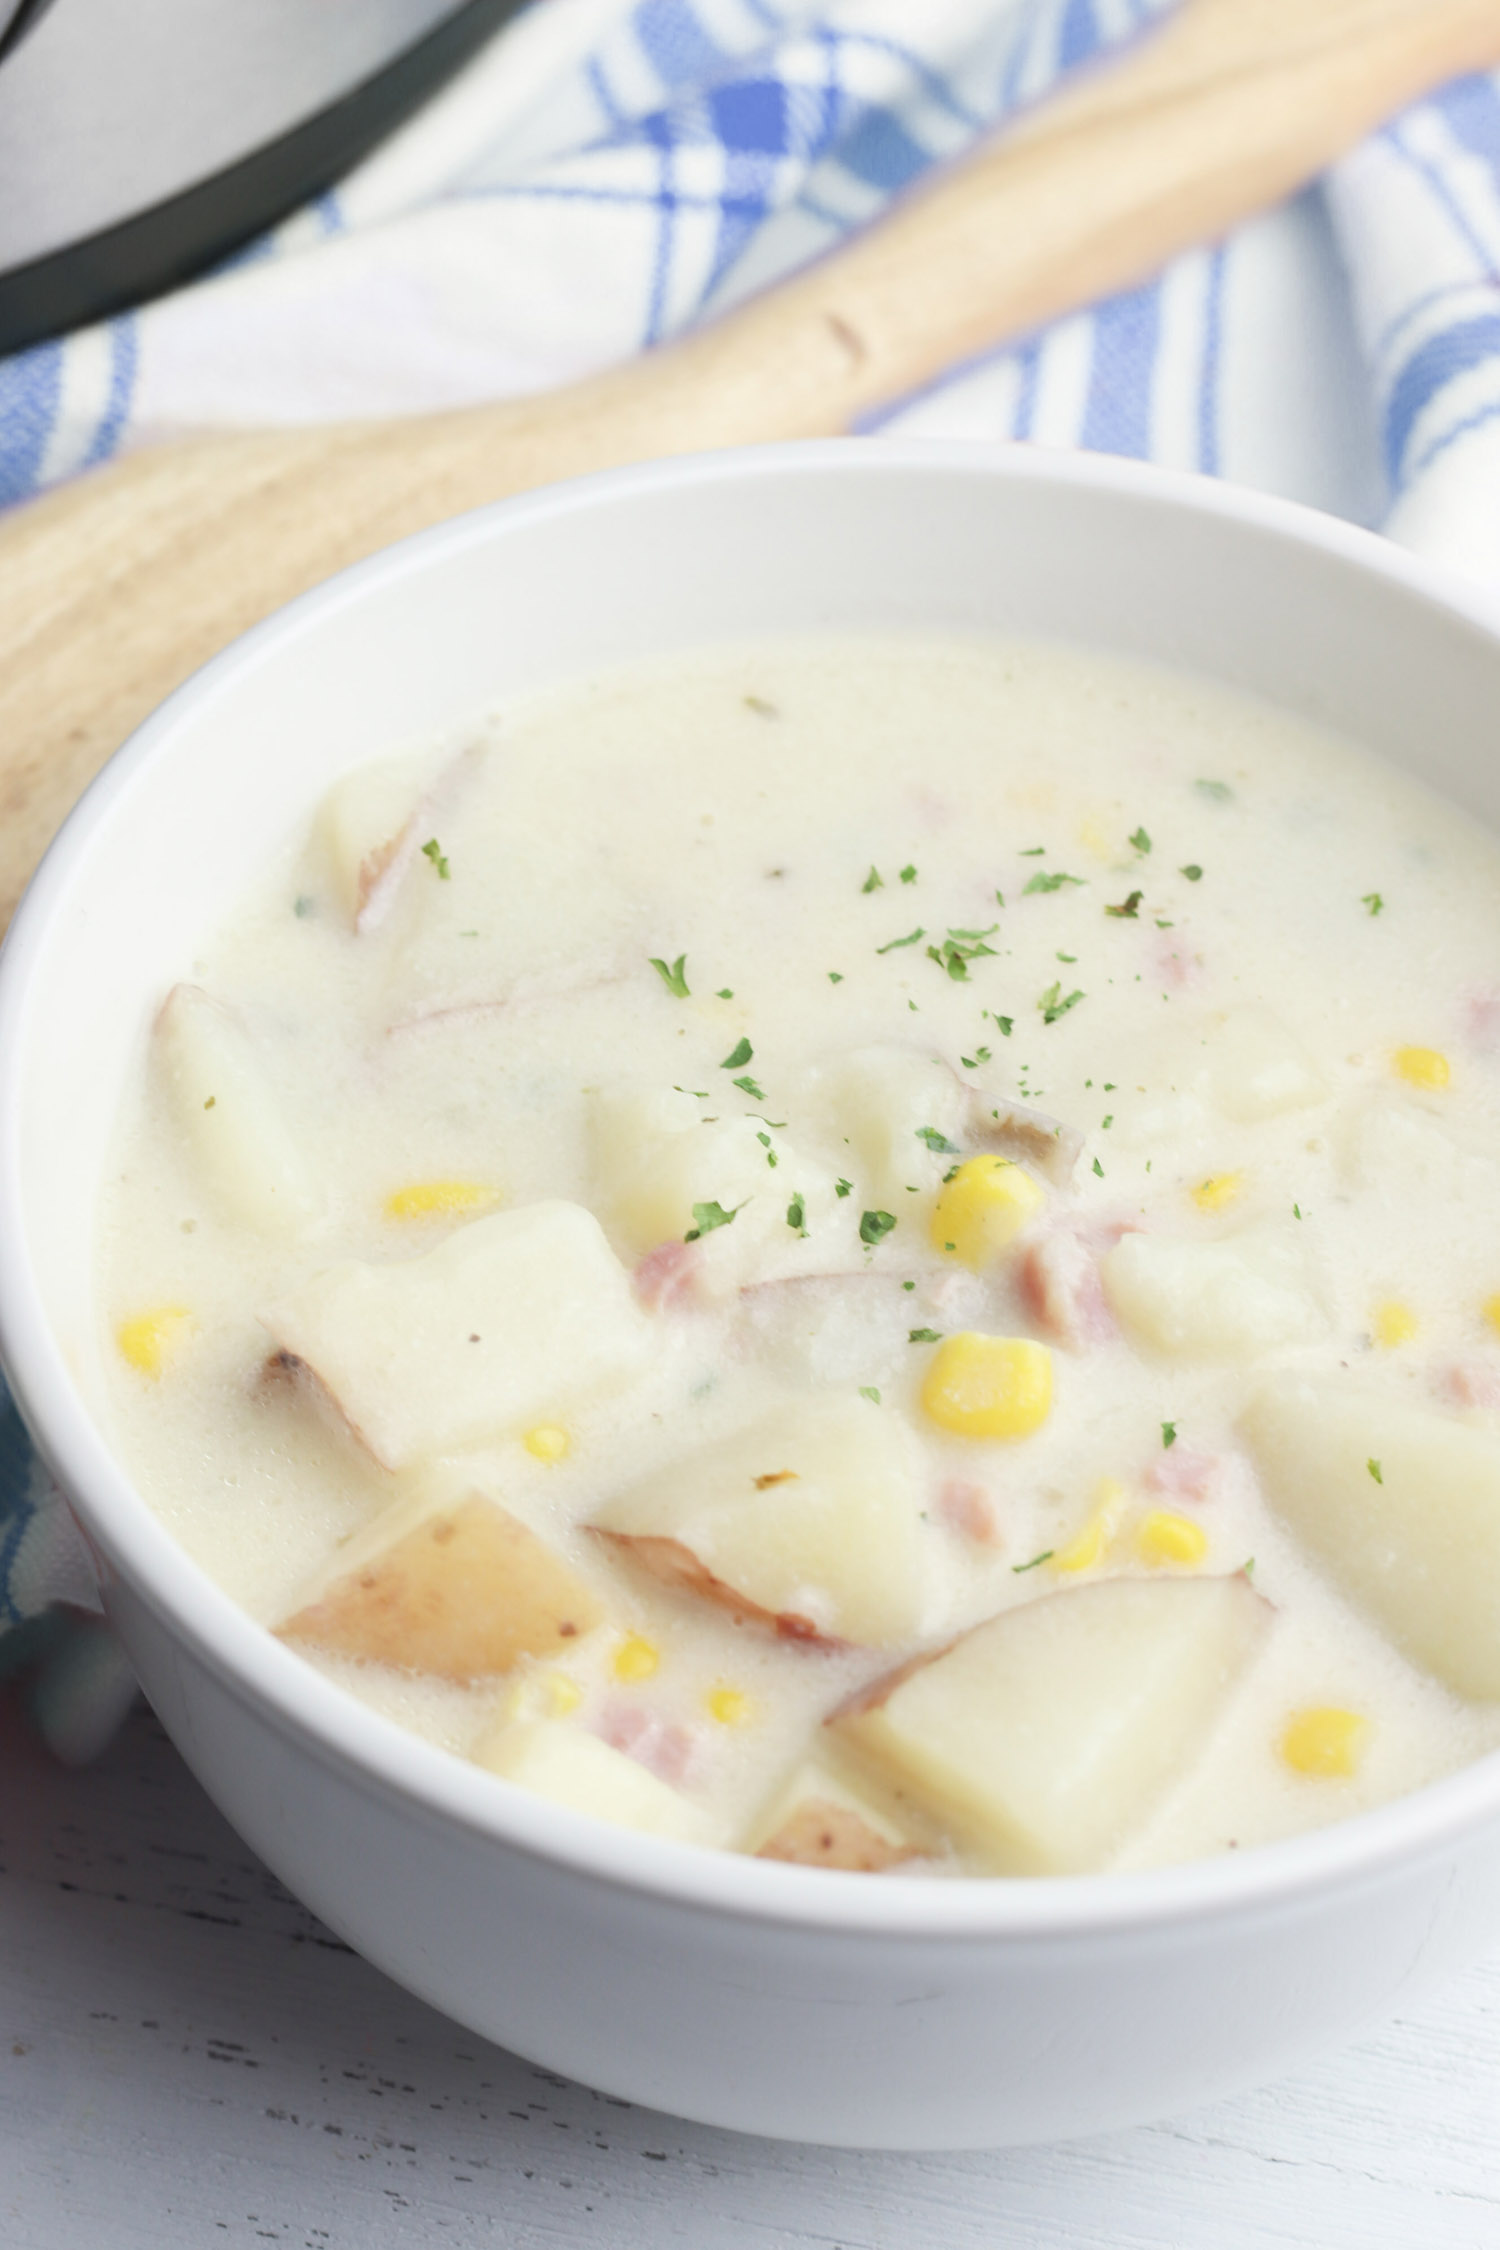 Creamy corn soup in a white bowl in a kitchen.